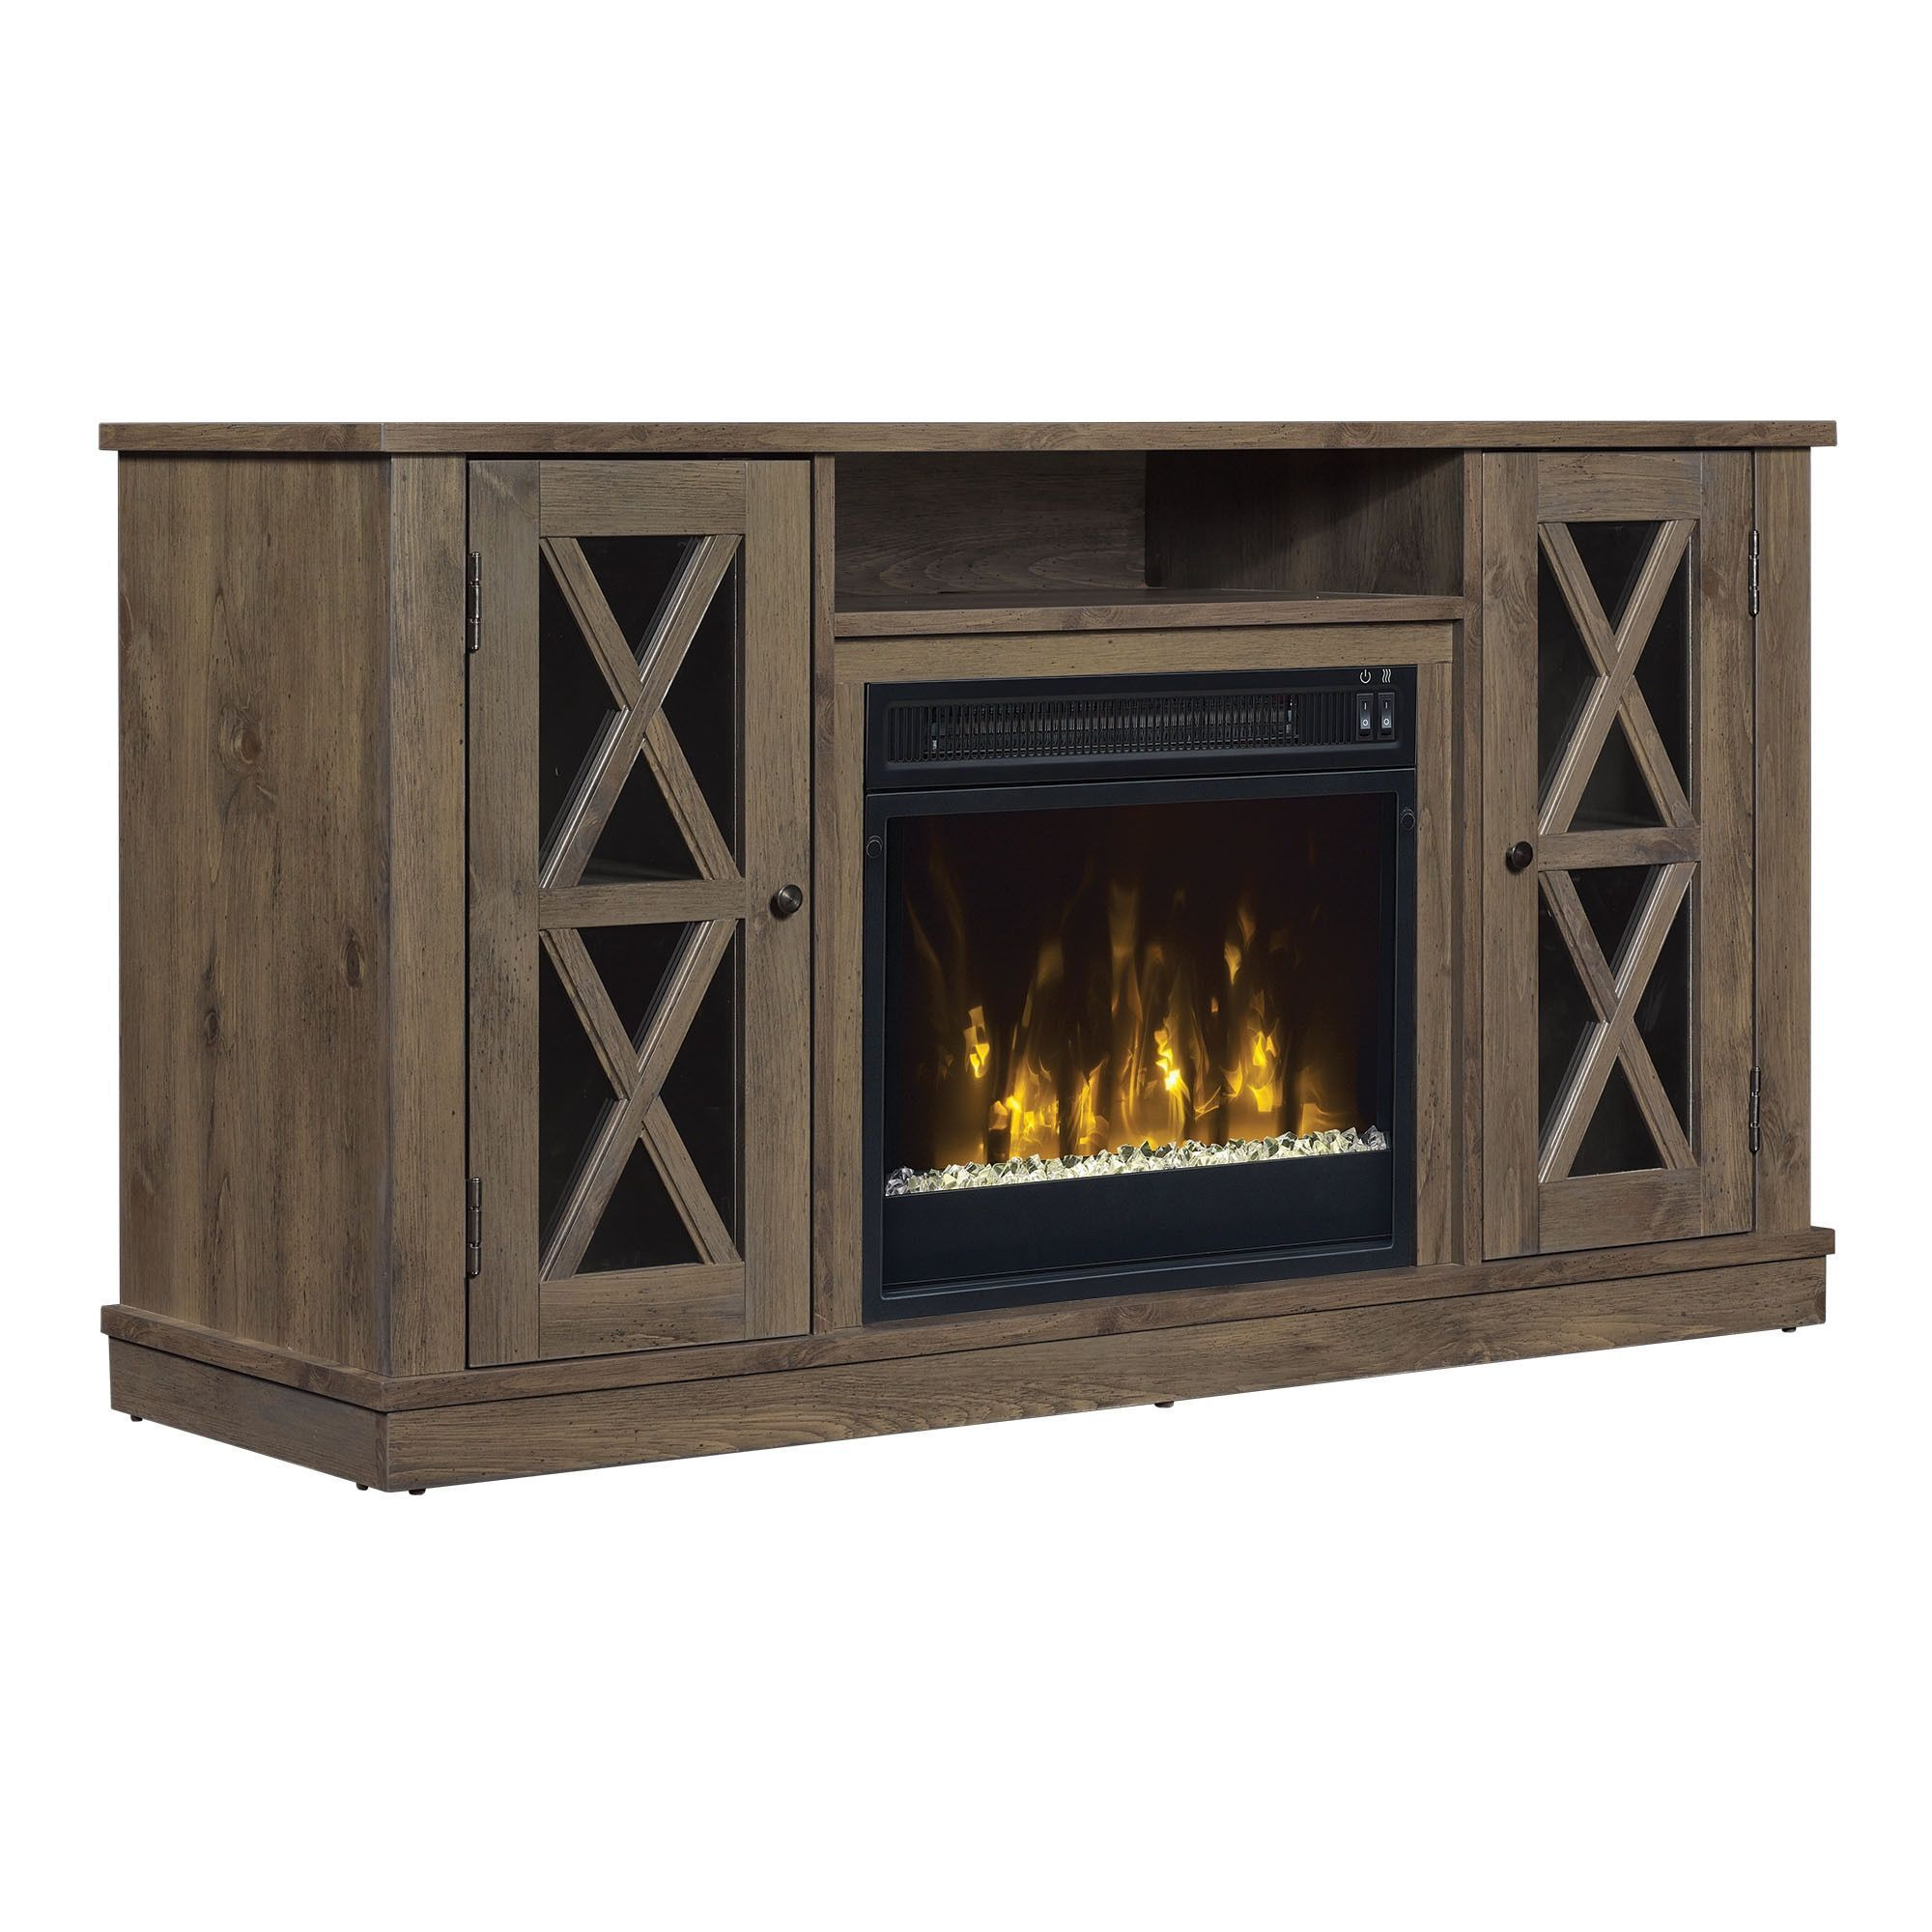 star bayport tv stand for tvs up to 55 inches with electric